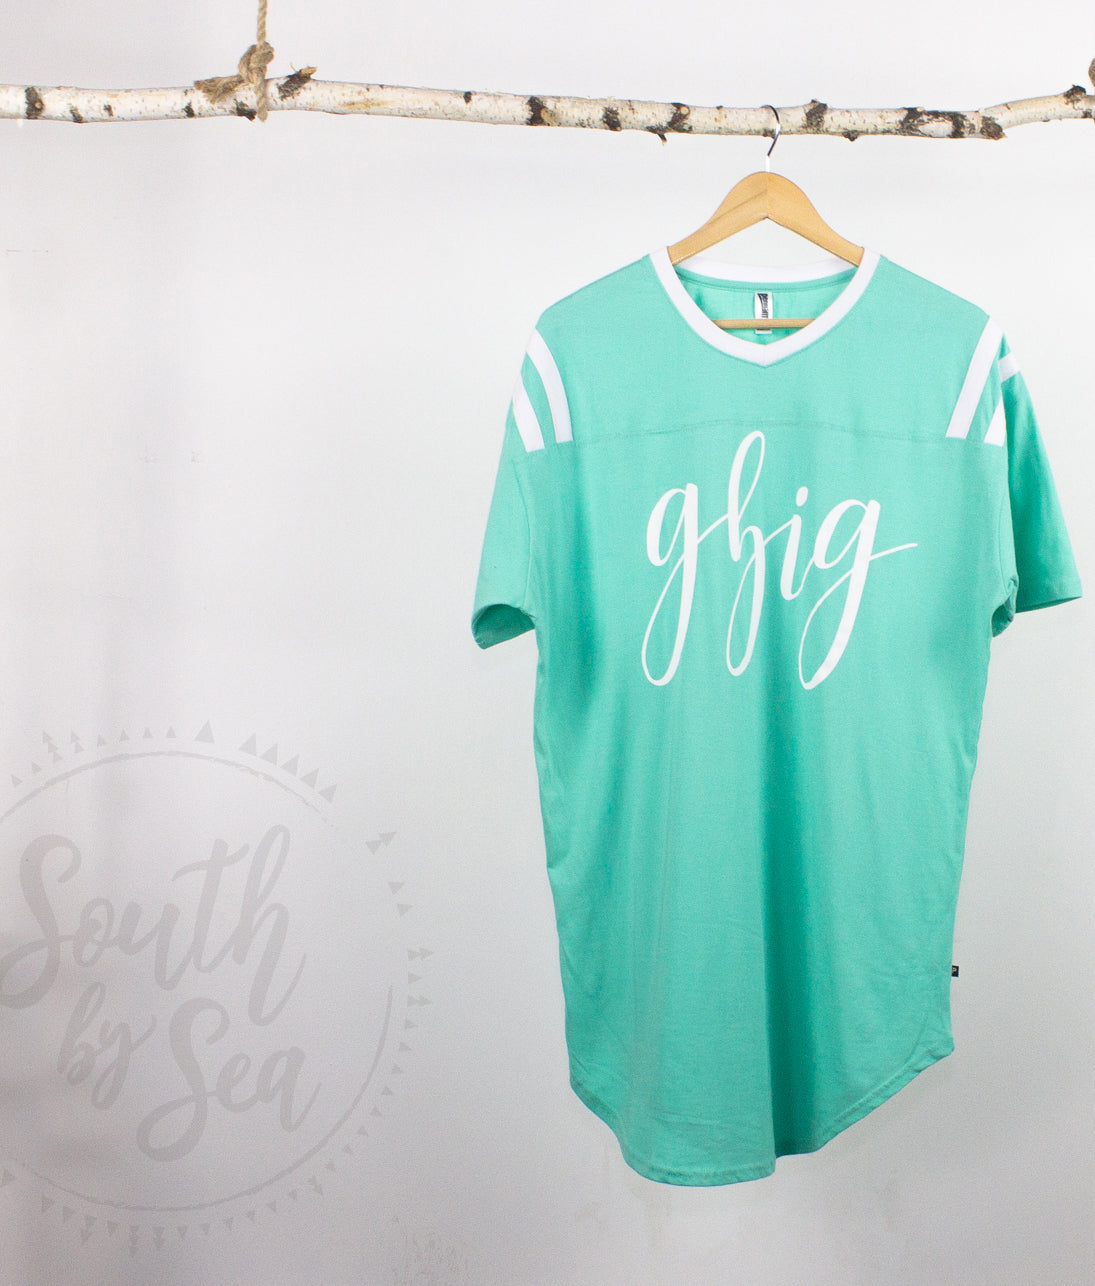 LAST CHANCE | 157462 | Big, Little, GBig Jersey Sleep Shirts